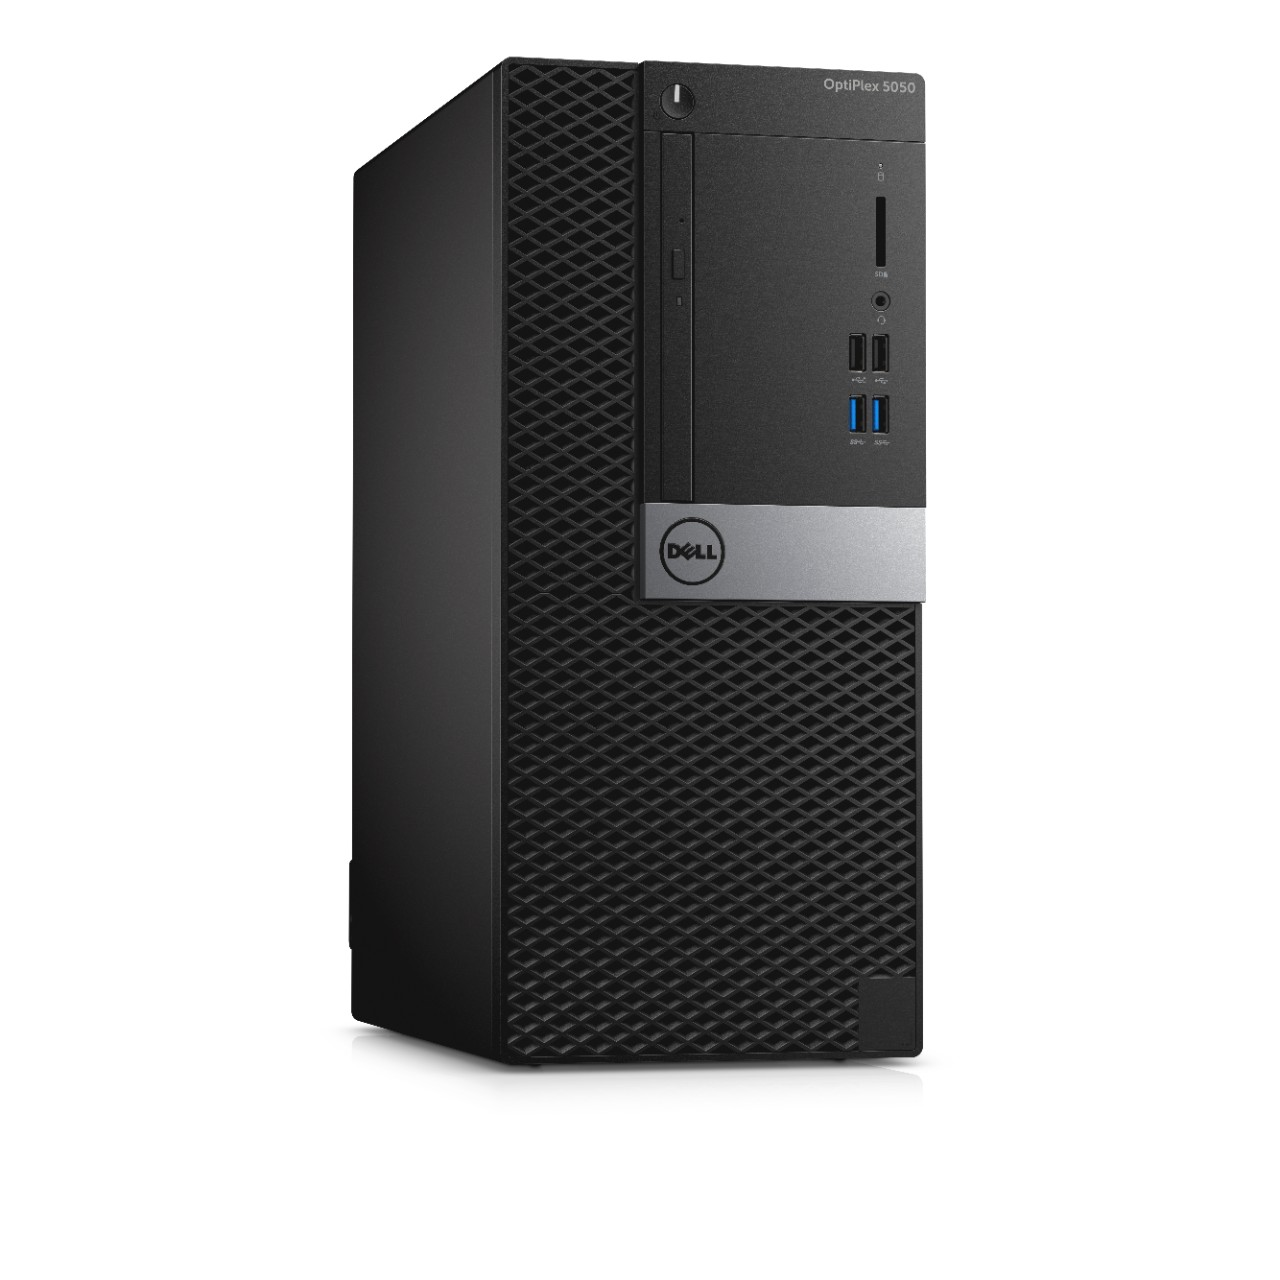 Dell PC Optiplex 5050 MT i5-6600/8G/1TB/DP/R5-430-2GB/HDMI/DVD/bez KB/W10P/5rNBD PrSu